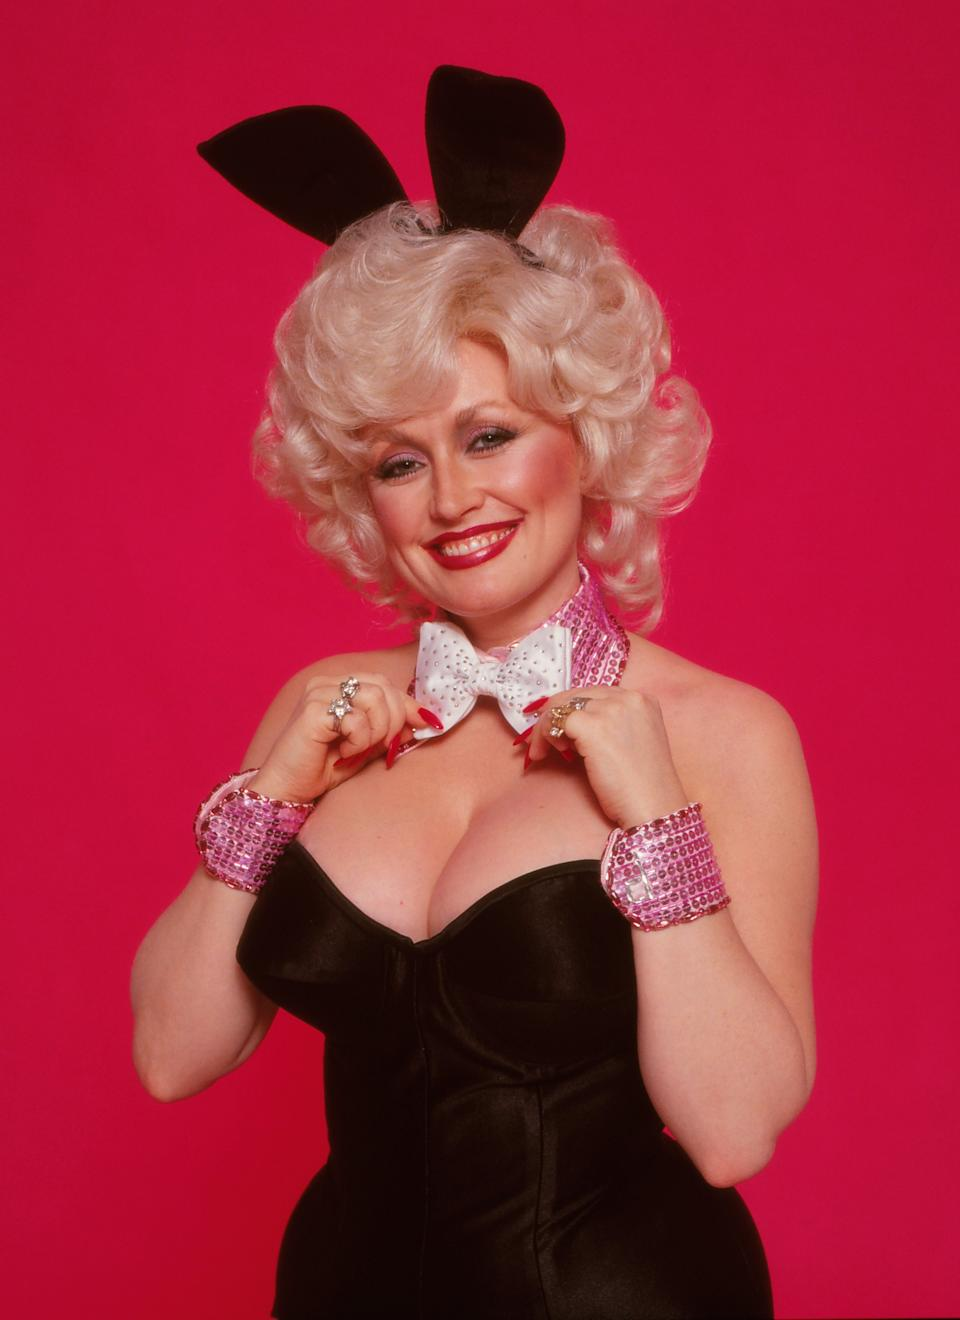 Dolly Parton originally posed for Playboy in 1978. (Photo by Harry Langdon/Getty Images)